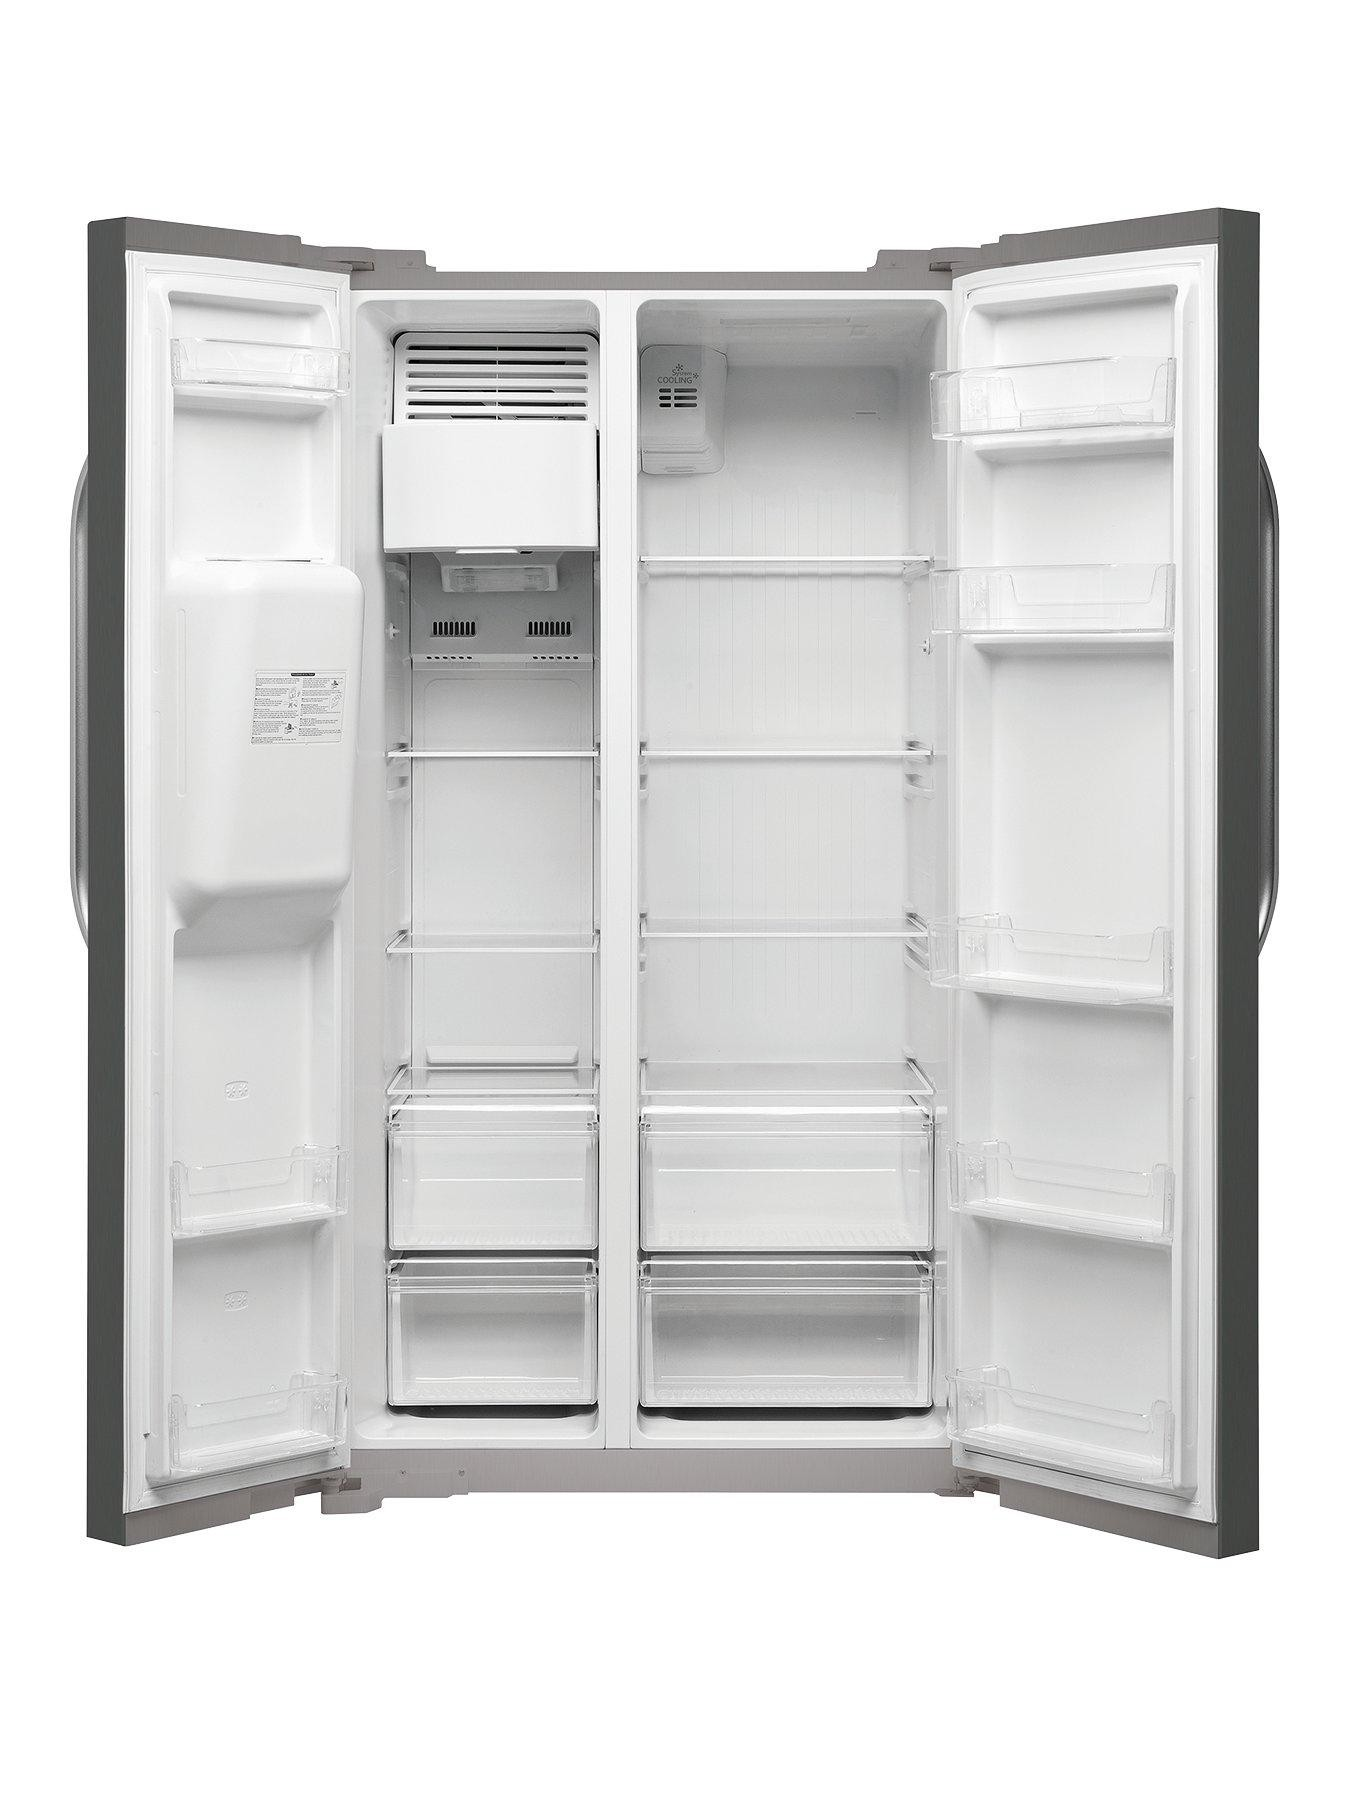 Hotpoint SXBHE924WD Fridge Freezer